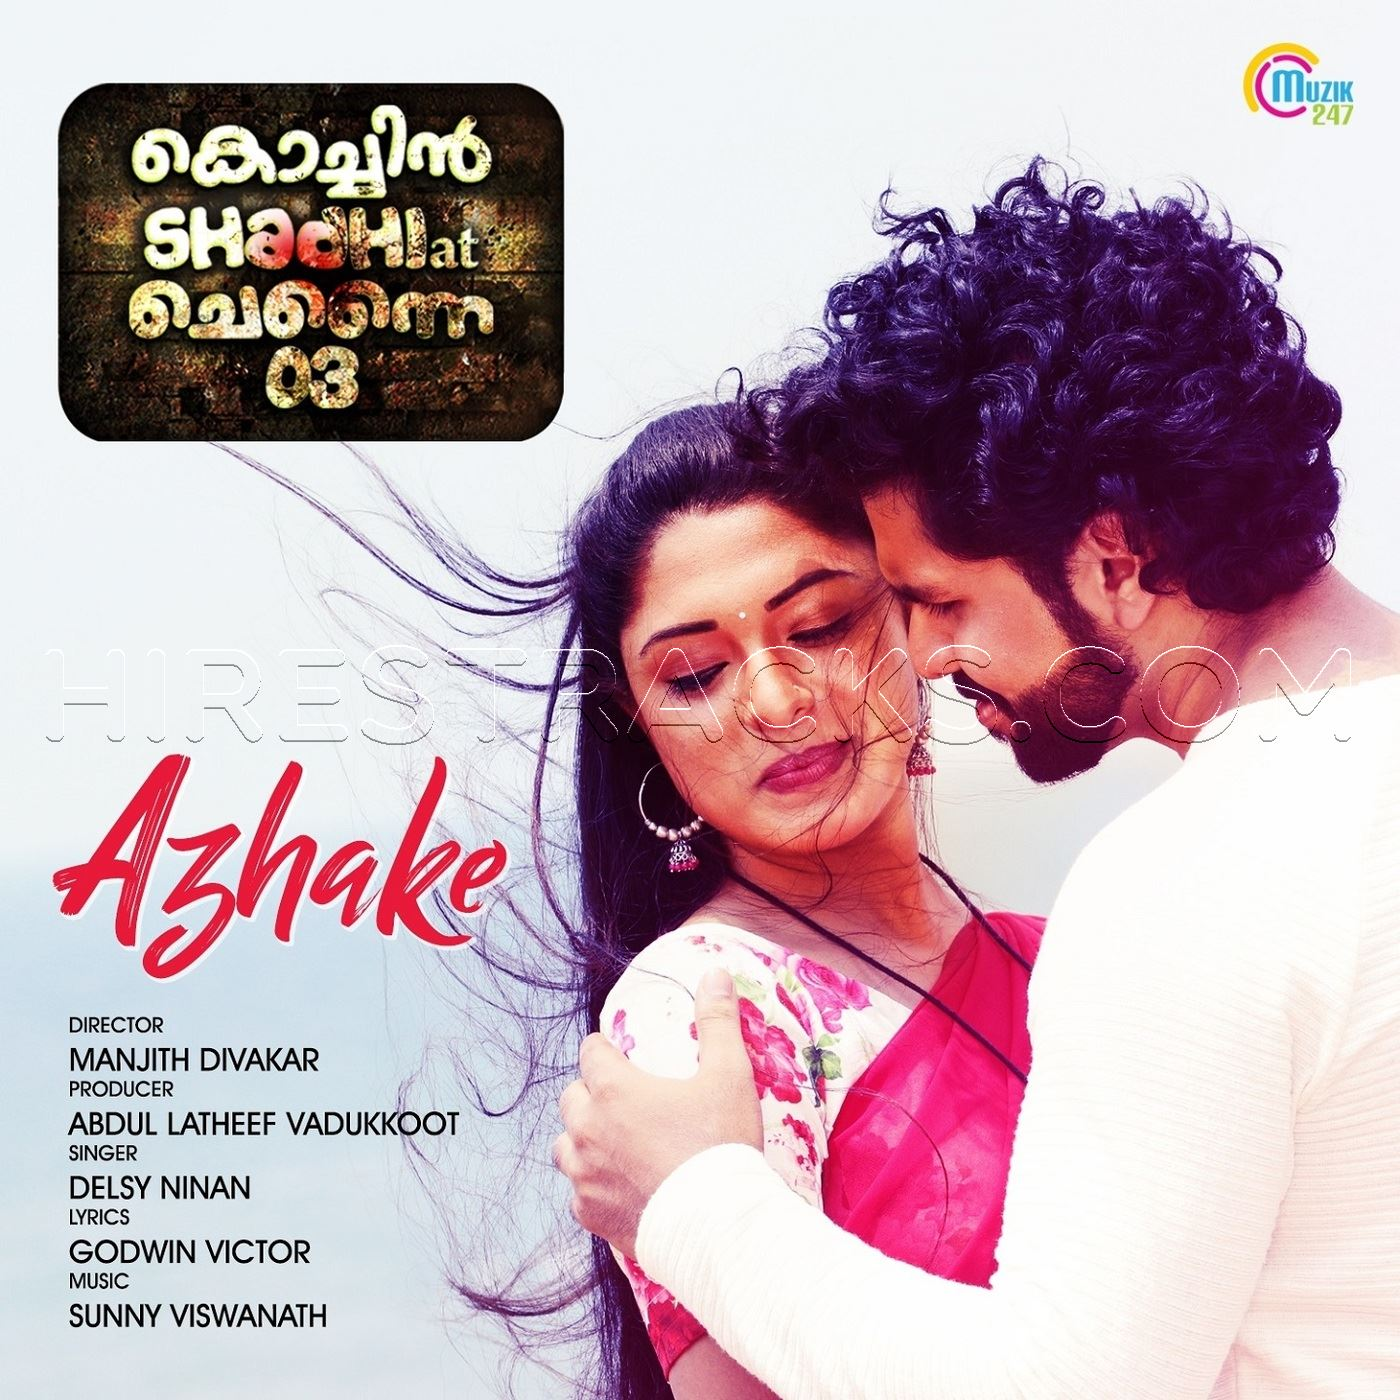 Azhake (From Cochin Shadhi at Chennai 03) (2019) (Delsy Ninan) (Muzik247)